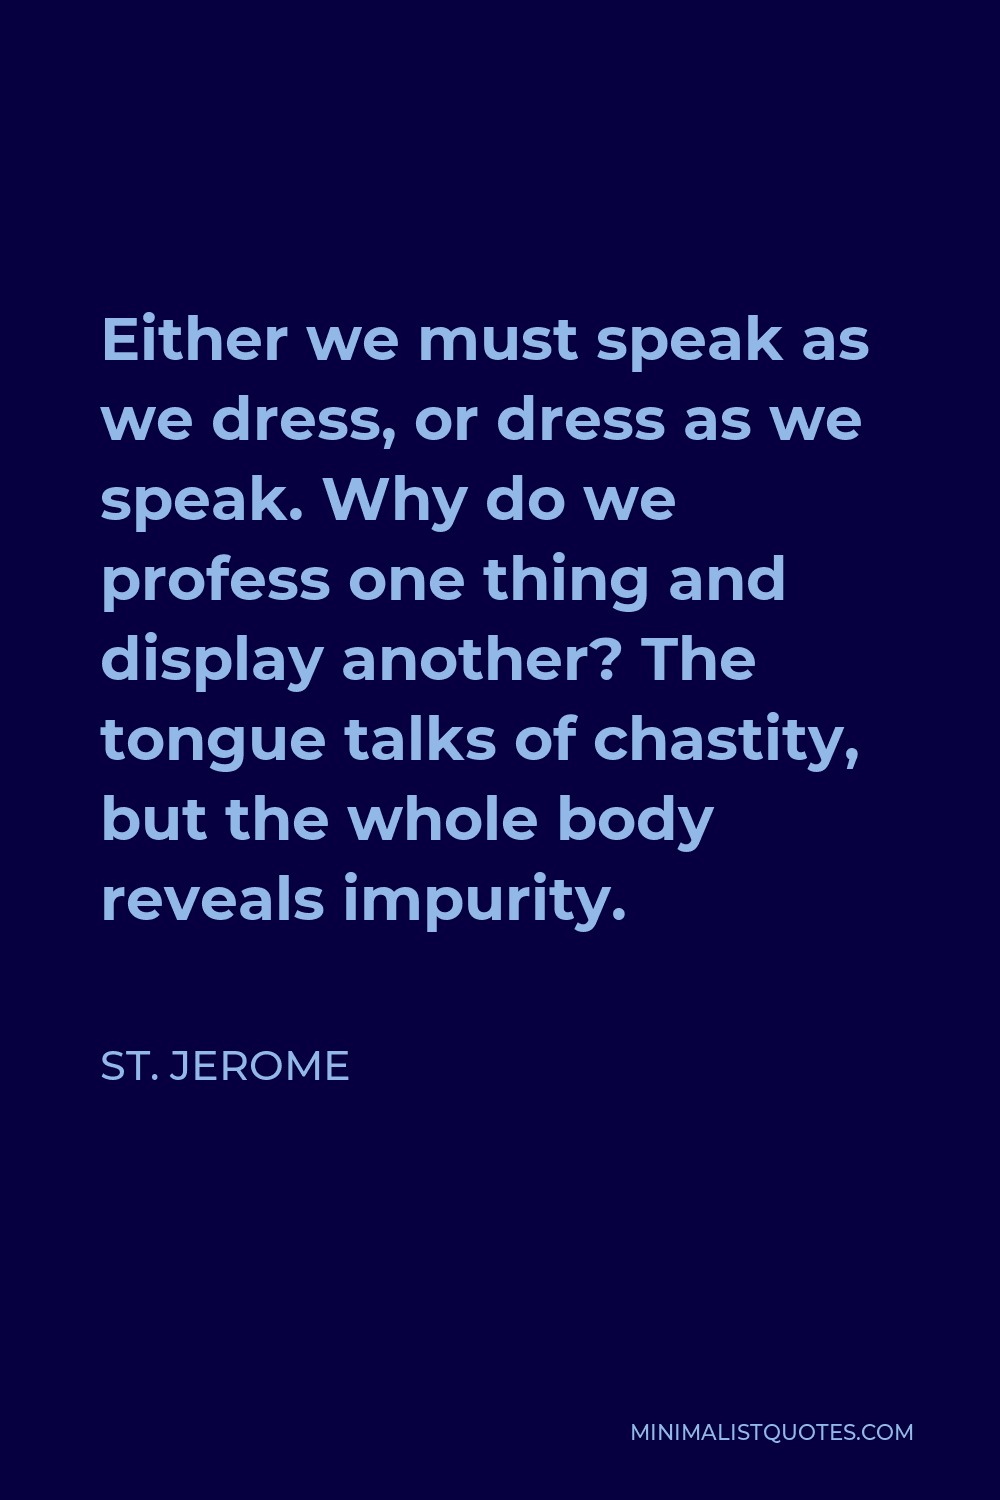 St. Jerome Quote - Either we must speak as we dress, or dress as we speak. Why do we profess one thing and display another? The tongue talks of chastity, but the whole body reveals impurity.